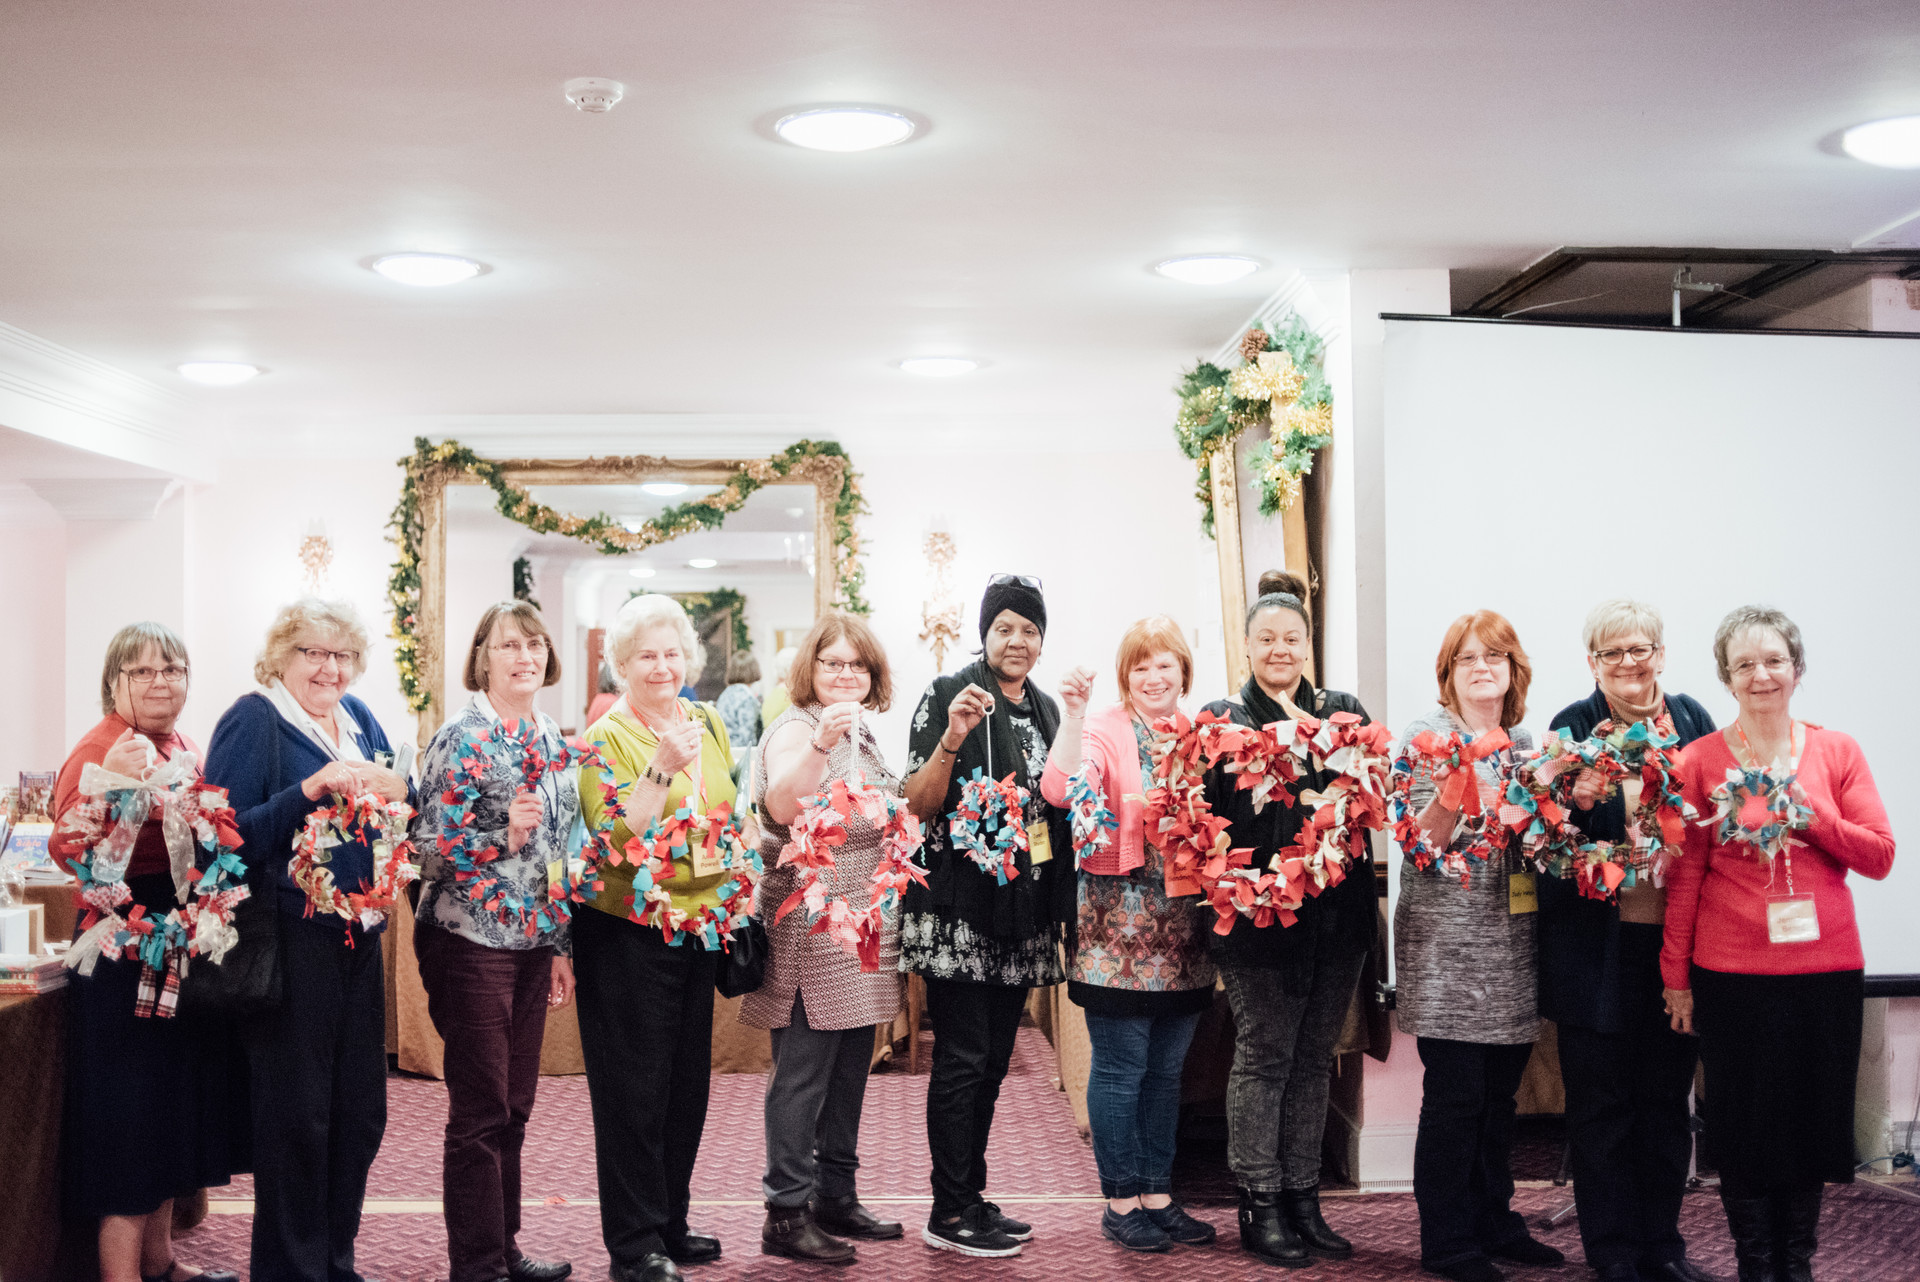 A line of eleven ladies each holding a handmade wreath and smiling.